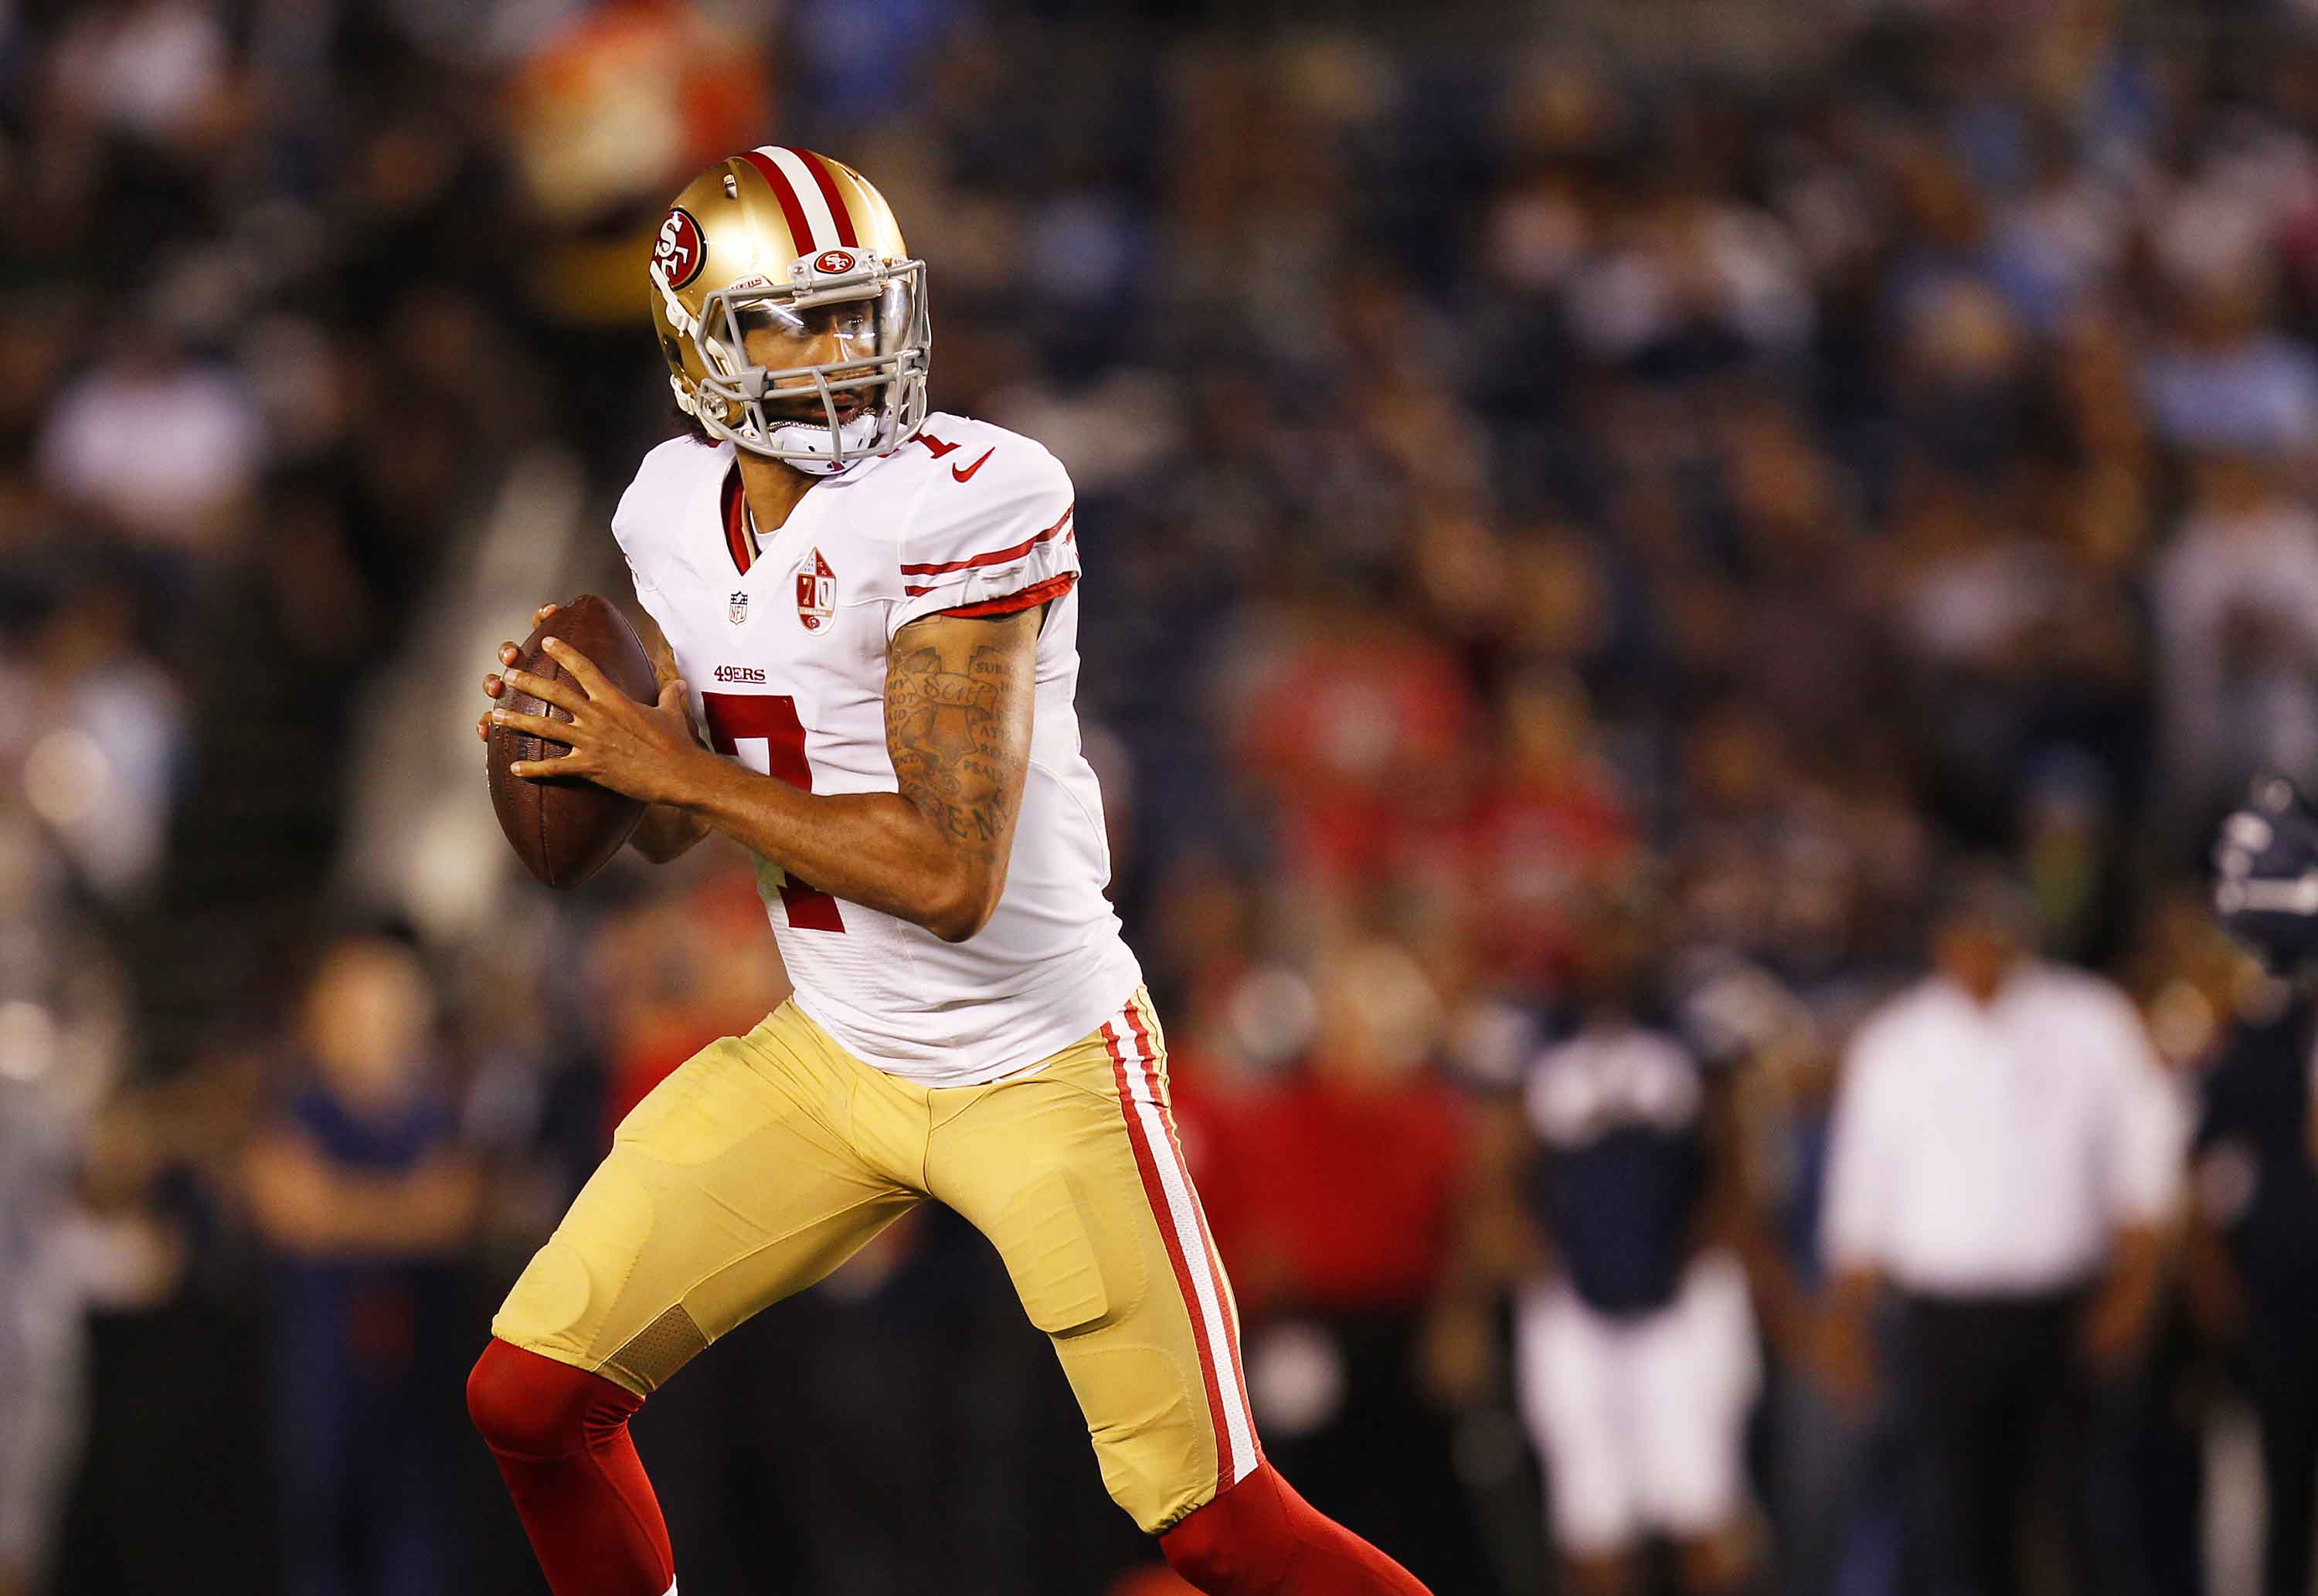 San Francisco 49ers quarterback Colin Kaepernick scrambles against the San Diego Chargers in the second quarter during a preseason game on Thursday, Sept. 1, 2016, at Qualcomm Stadium in San Diego. (K.C. Alfred/San Diego Union-Tribune/TNS)